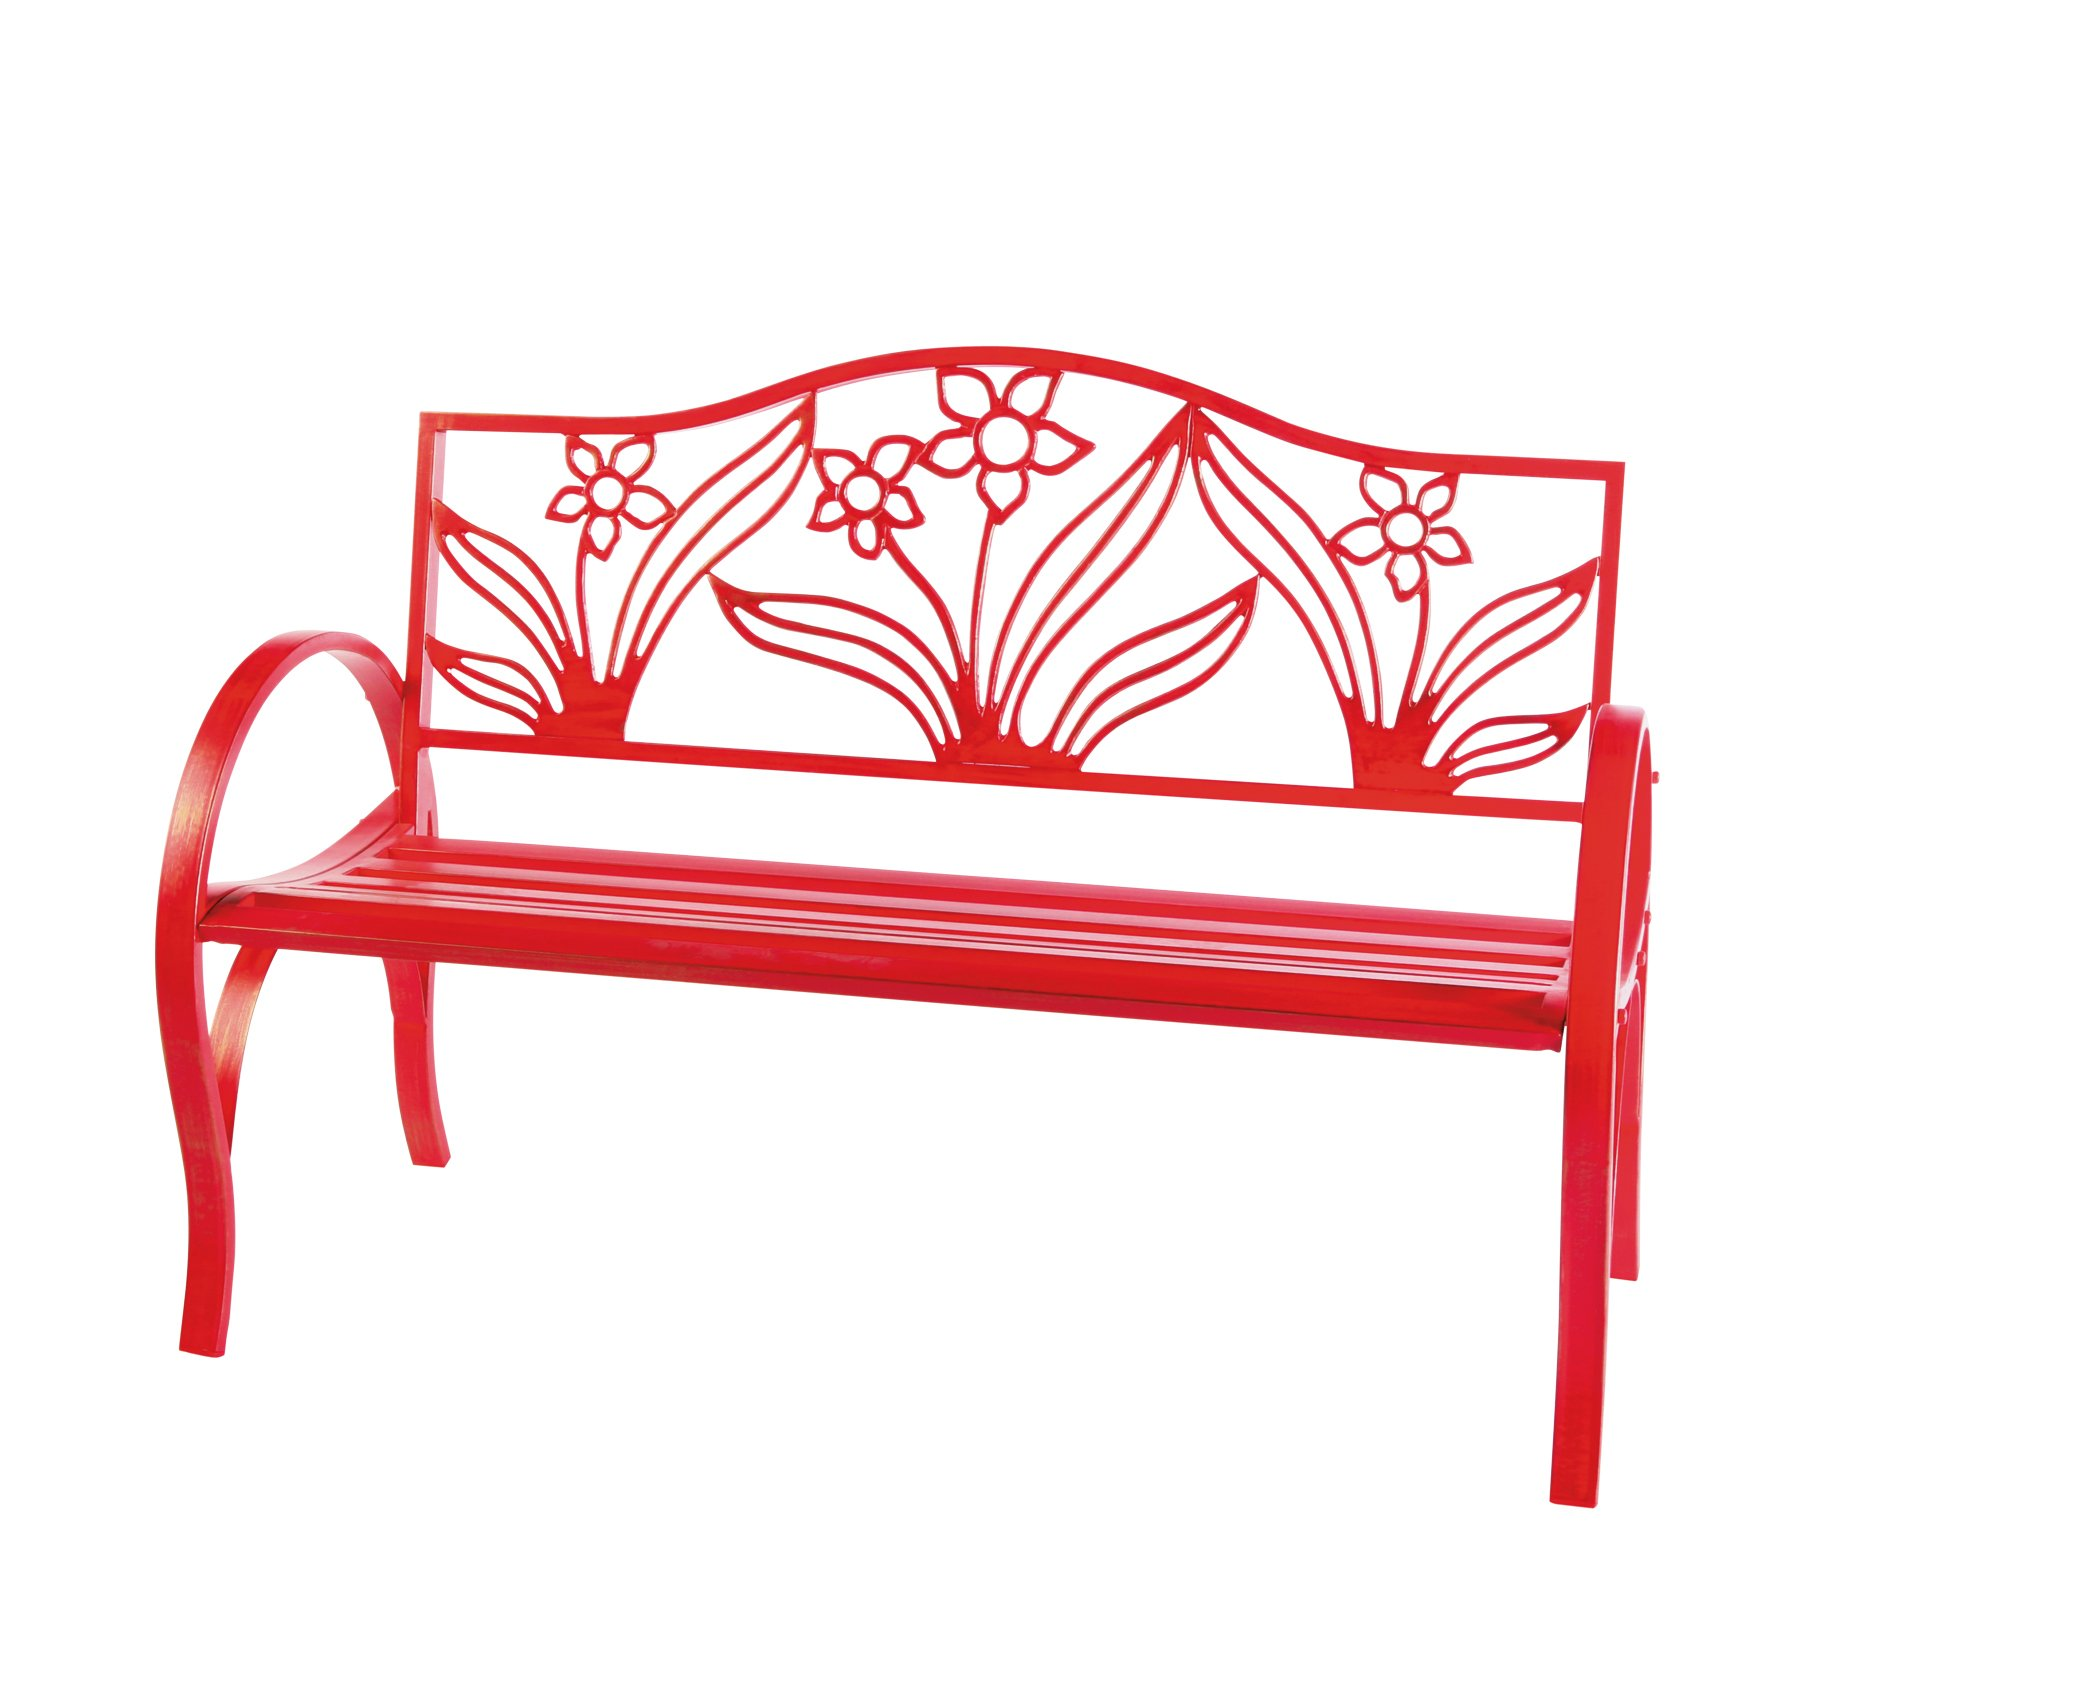 Outdoor Solutions Red Flower Bench Shop Furniture at HEB